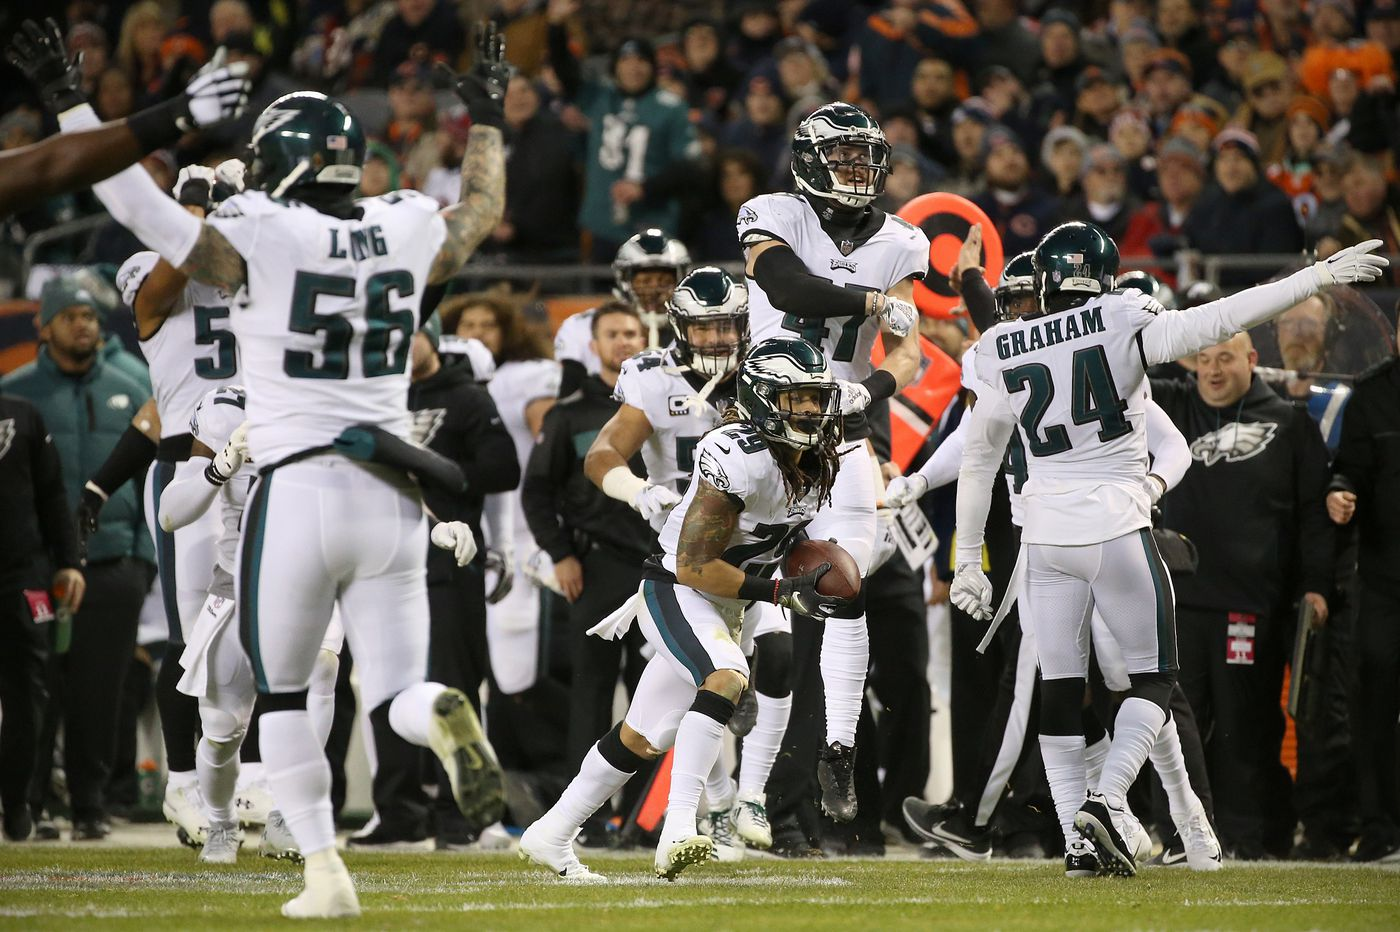 Avonte Maddox is growing up fast, but the Eagles might need him to be more than a rookie vs. the Saints